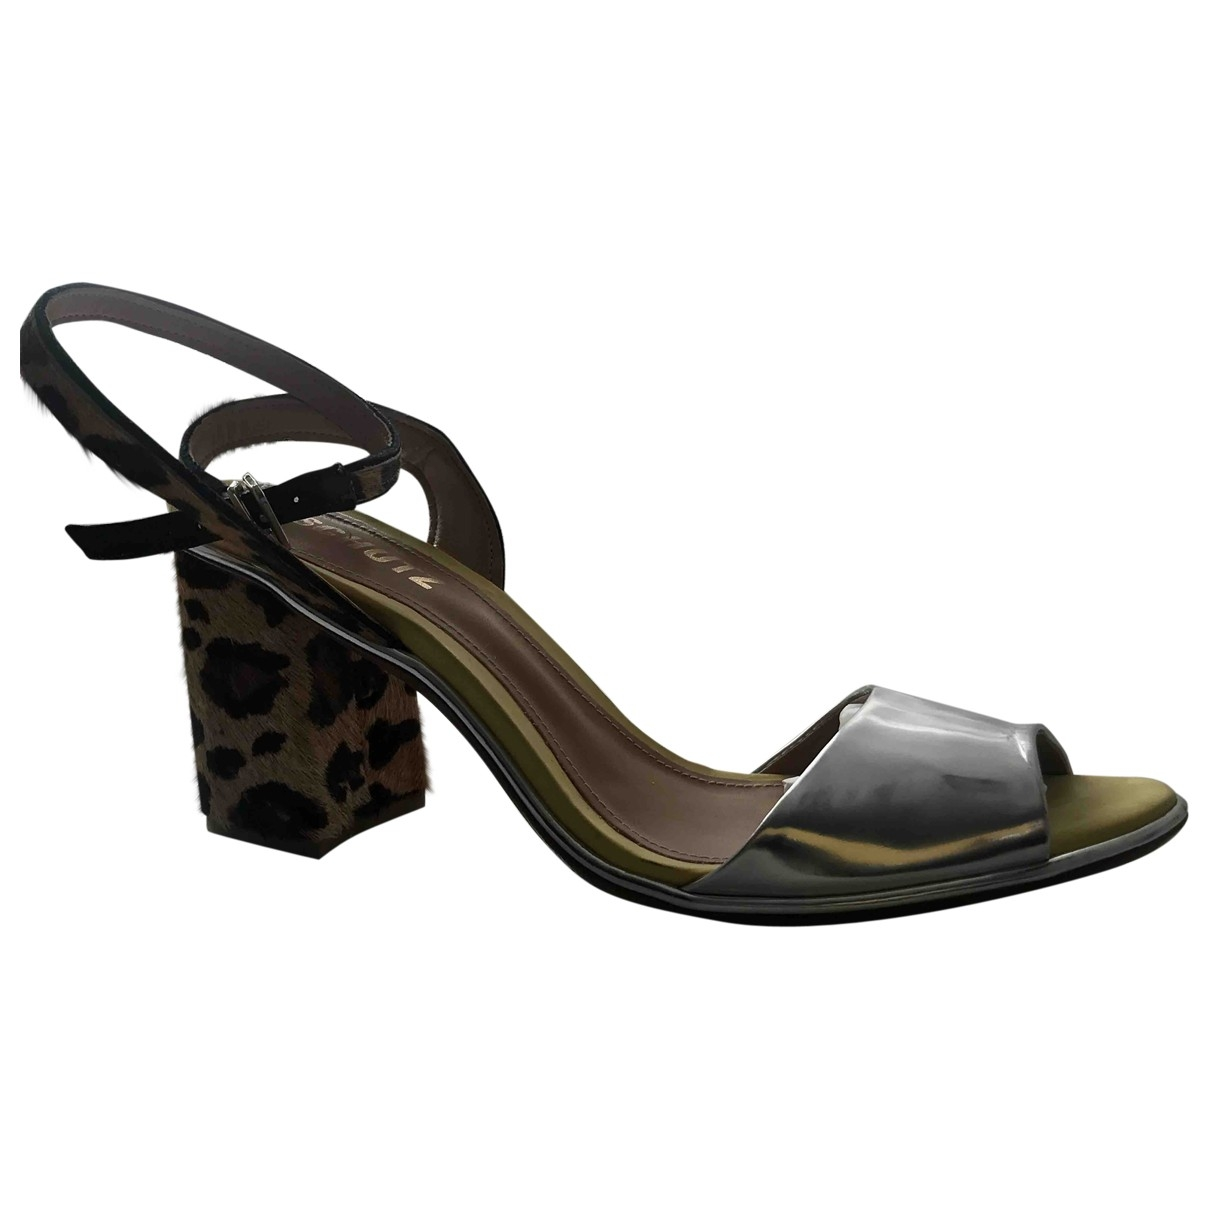 Schutz \N Silver Patent leather Sandals for Women 40 EU